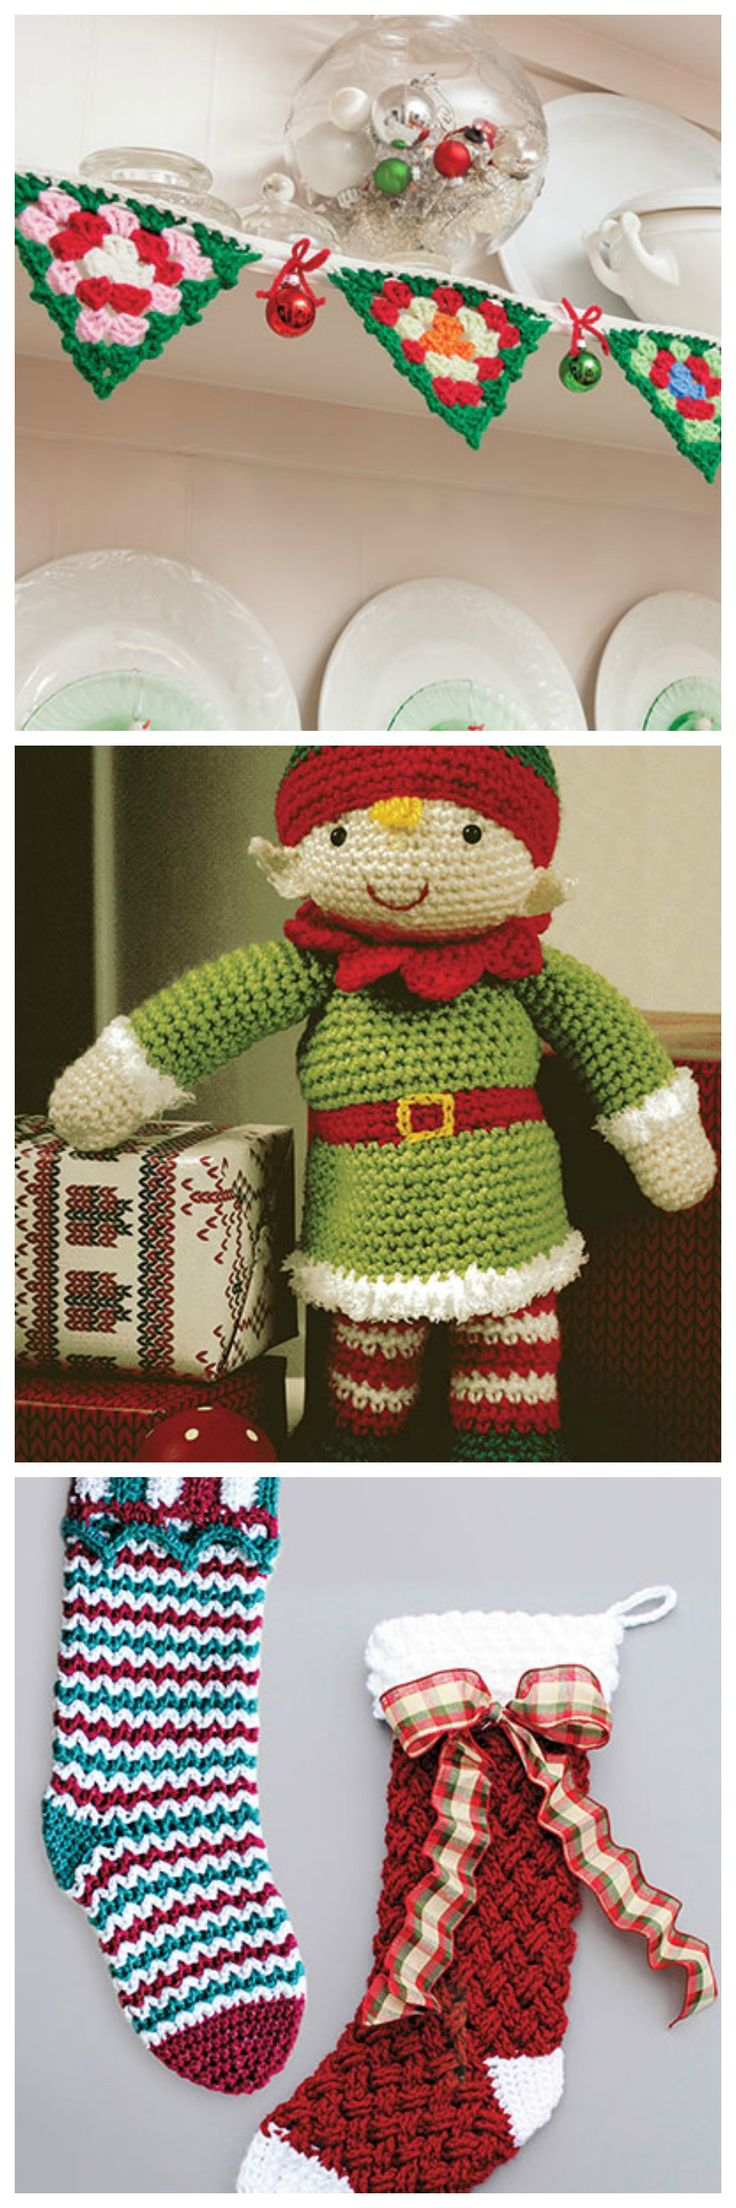 Browse crochet christmas patterns at annie s craft store https www anniescatalog